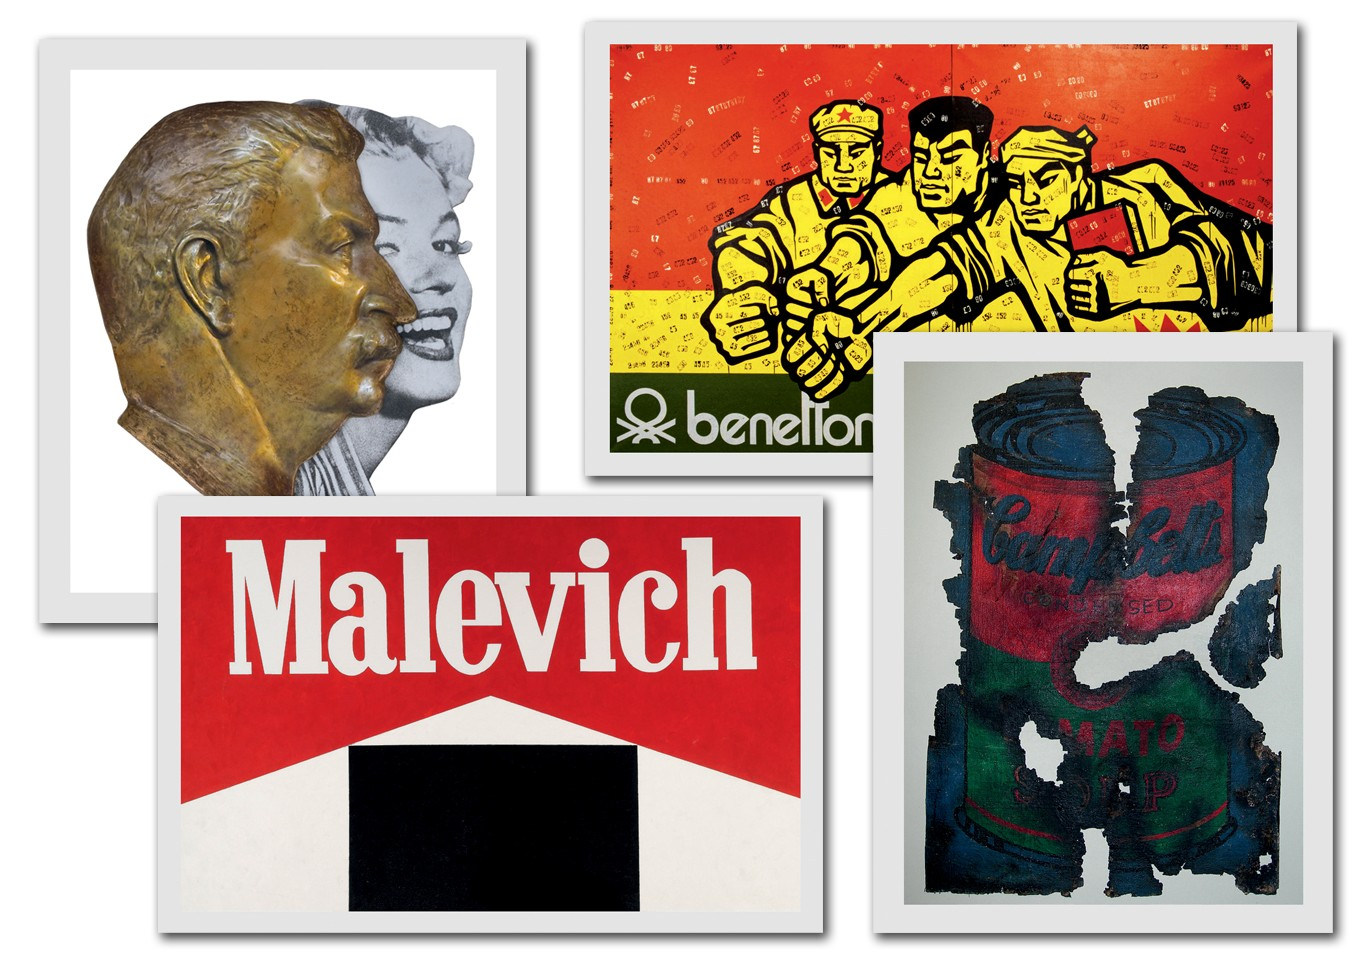 Benneton (1992), de Guangyi; Post Art: Warhol (1973), da dupla Komar e Melamid; Malevich (1987), de Kosolapov; e A Dreams Comes True (2008), de Lebedev (Foto: ©Keith Haring Foundation, 1981. Image Courtesy Of Keith Haring Foundation; ©Gary Hume, 2001. Image Courtesy Of The Collection Of Jonathan Caplan And Angus Cook; Jean Michel Basquiat/Private Collection; Mickalene Thomas/Private Collection, Geneva, Switzerland; e Divulgação)